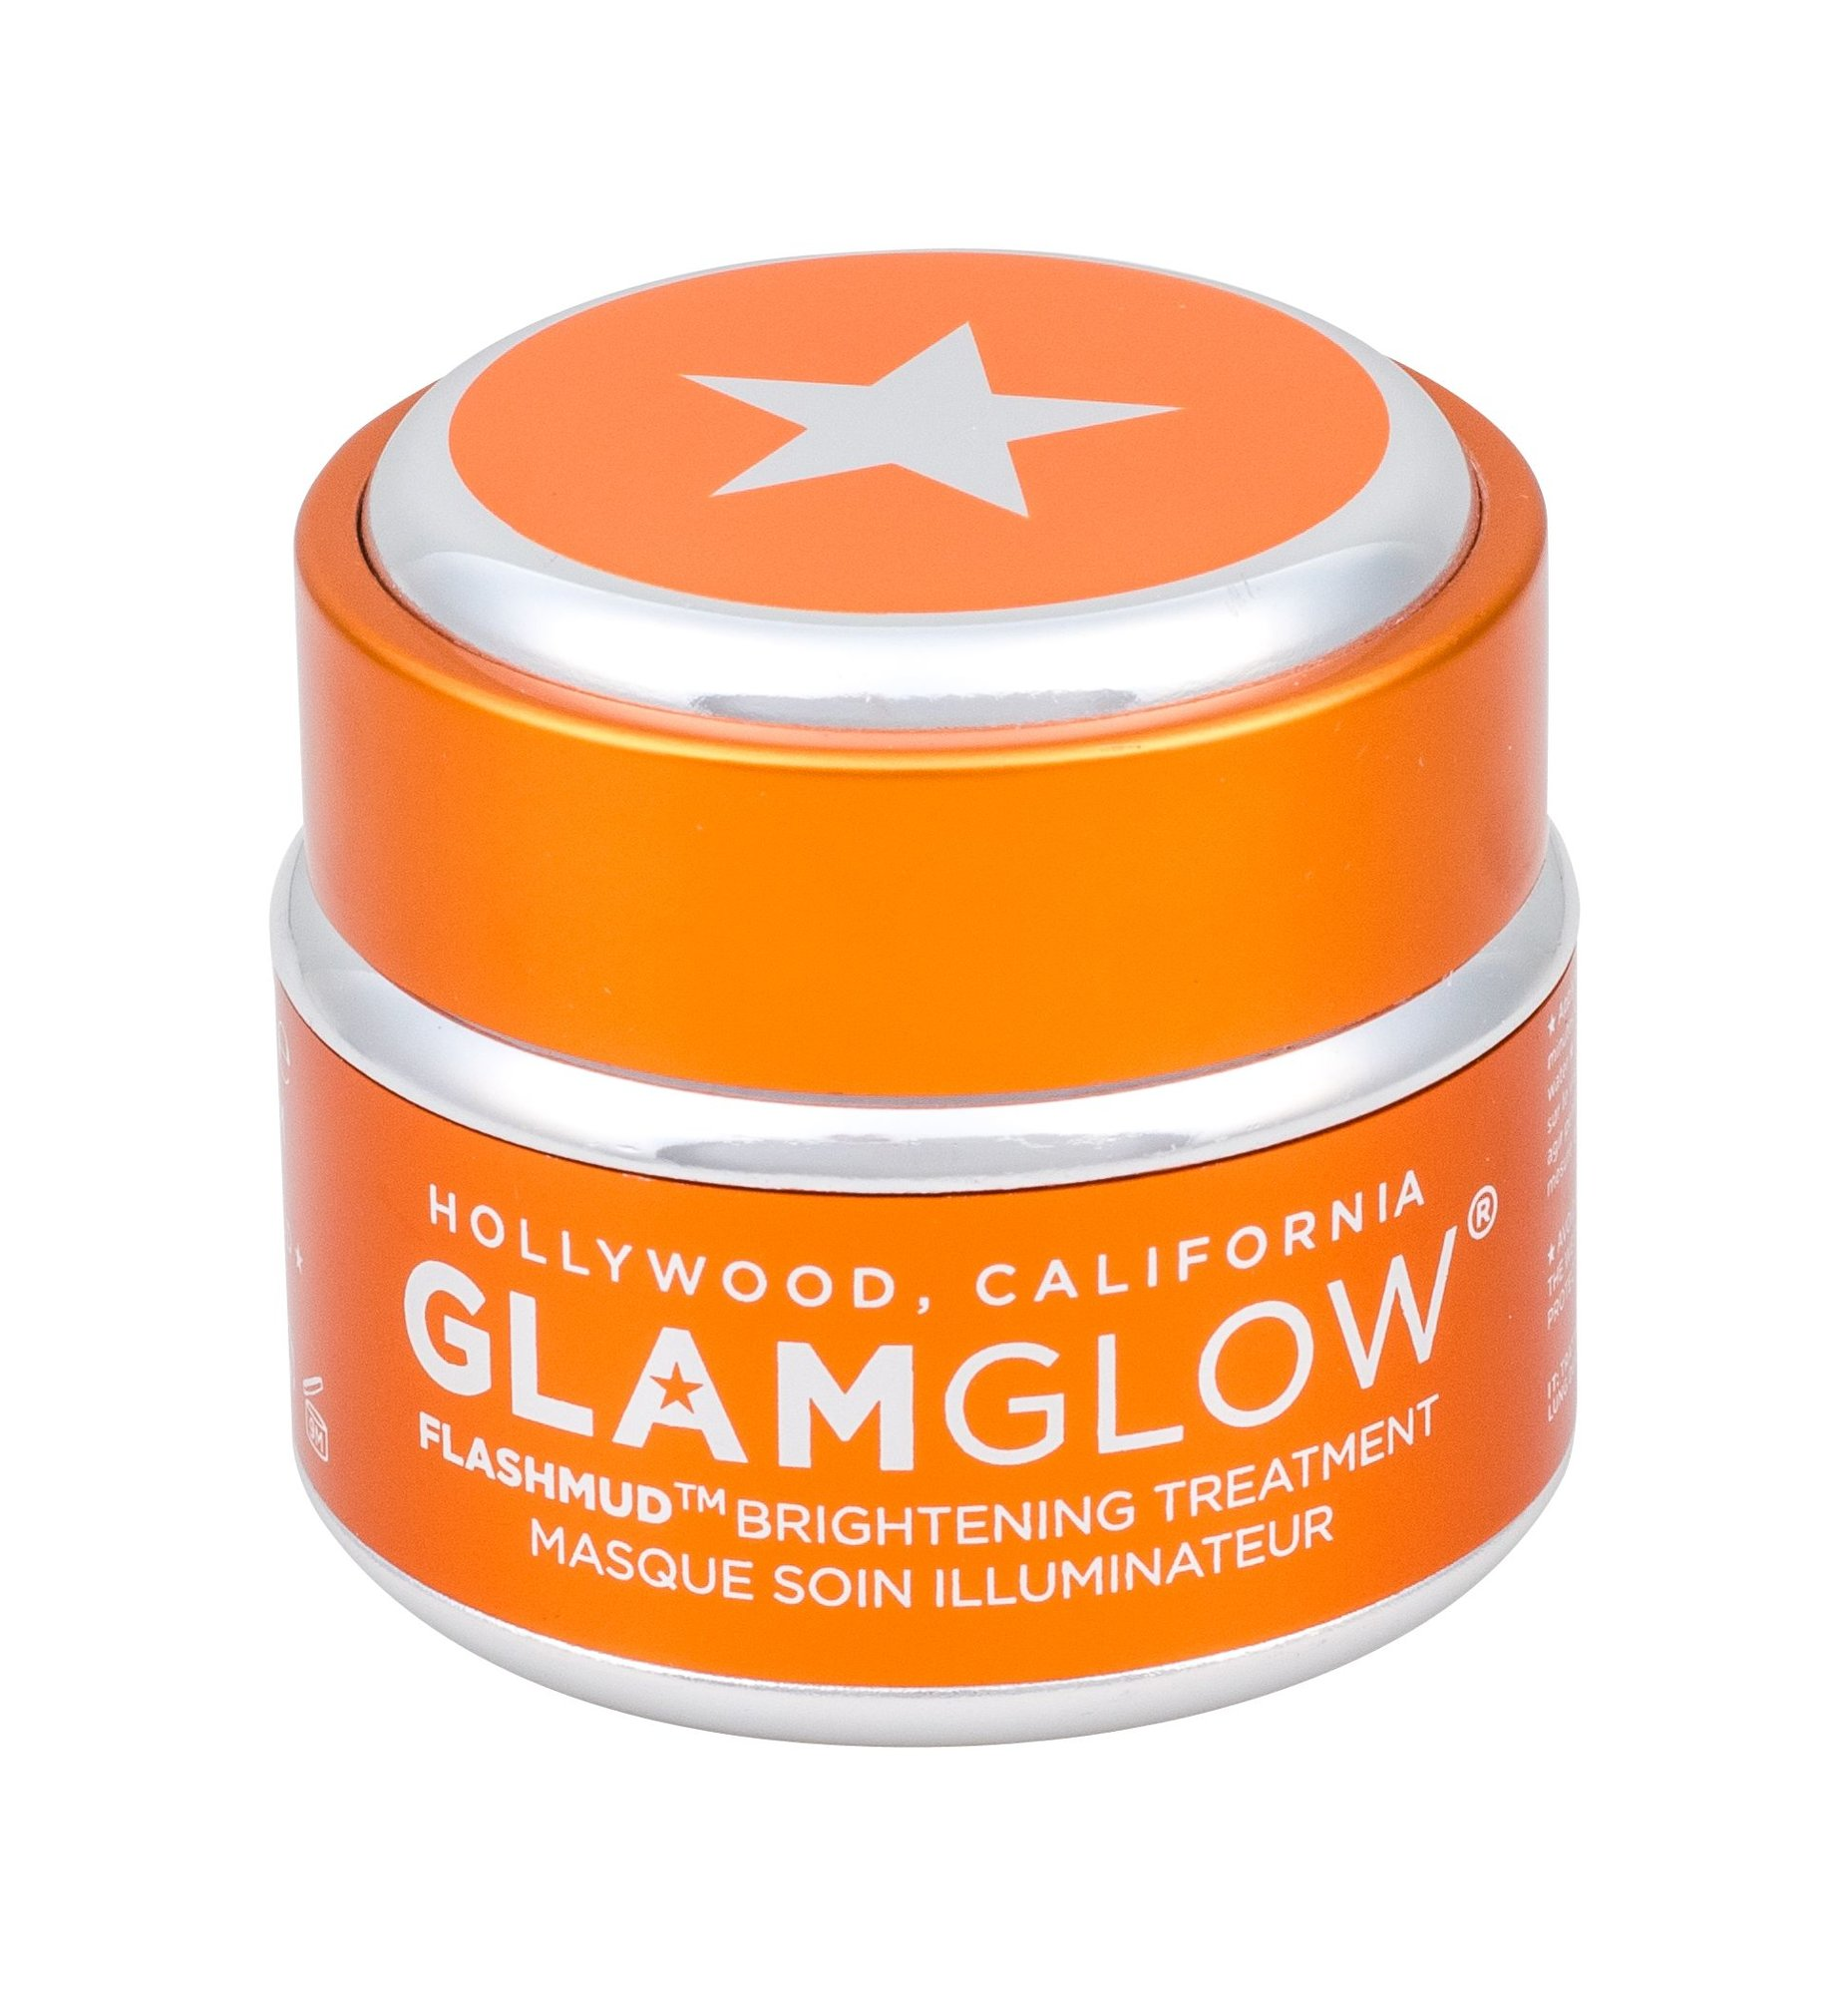 Glam Glow Flashmud Cosmetic 50ml